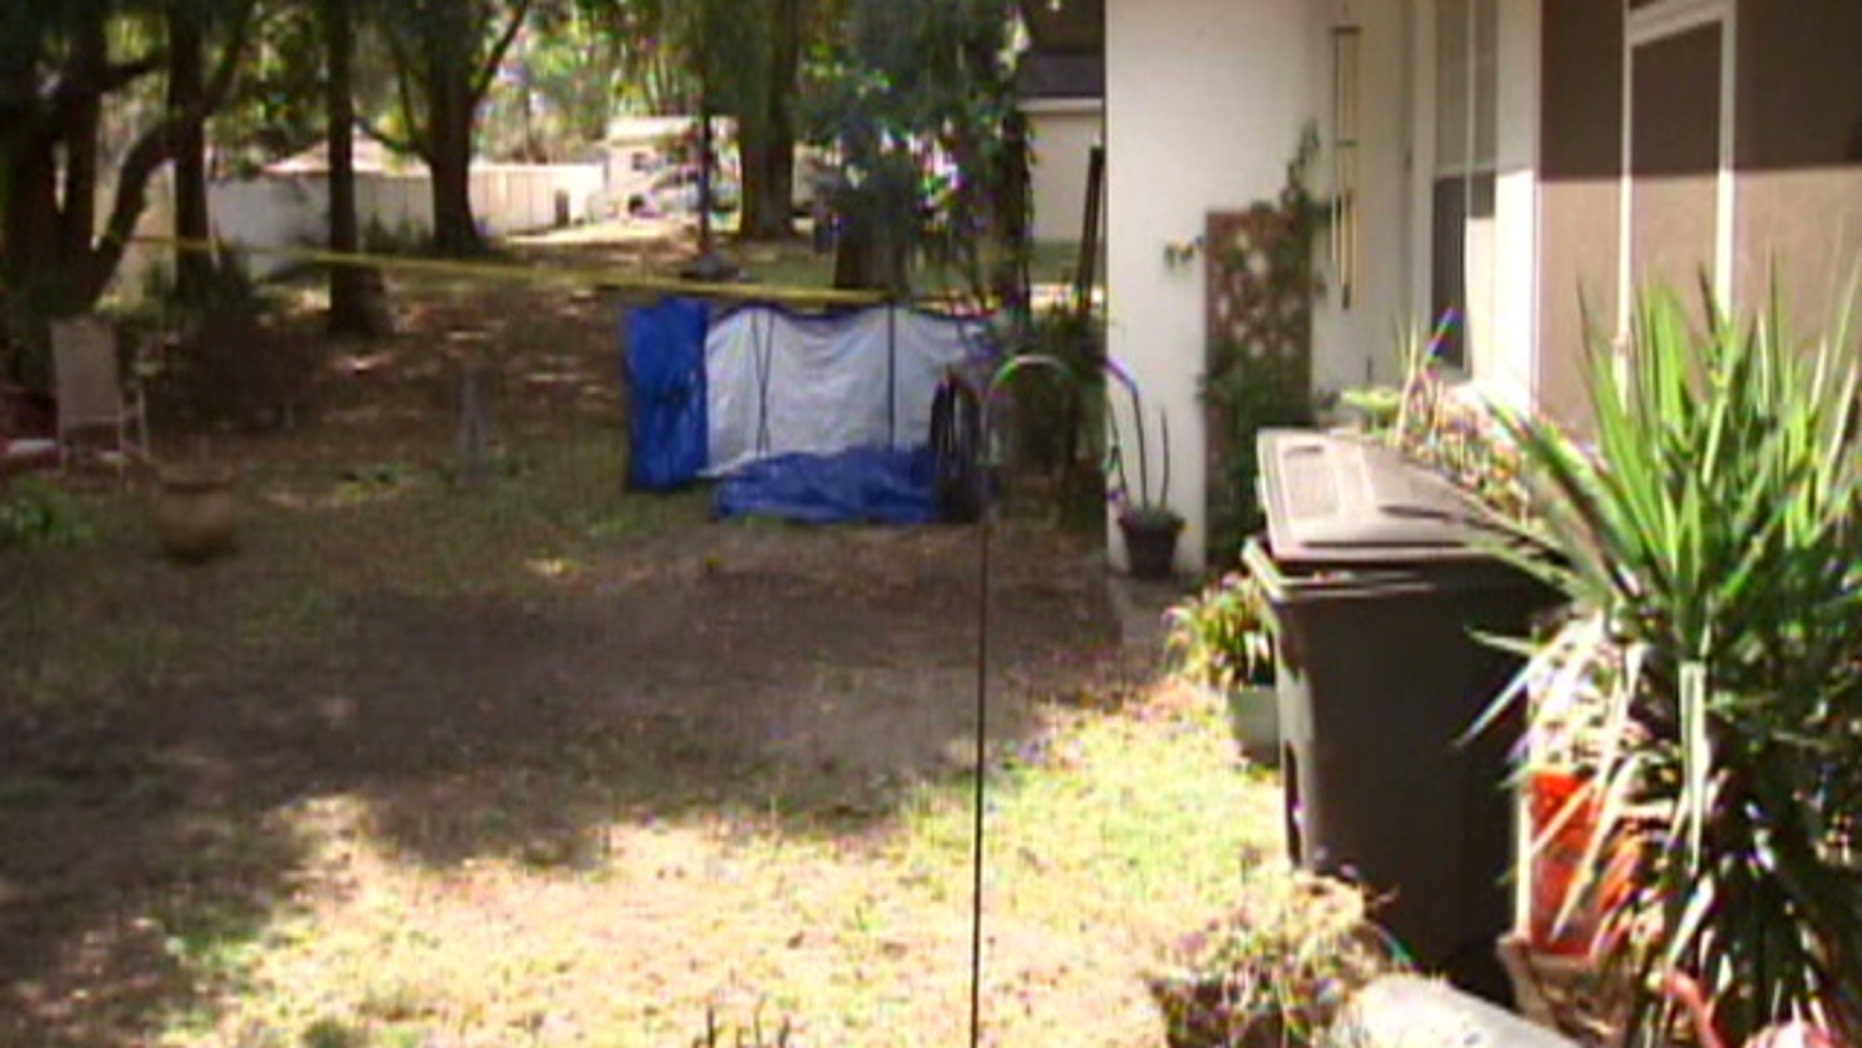 Benny Scott was buried in the garden of his Florida home under oregano, basil and banana peppers, MyFoxTampaBay.com reported.